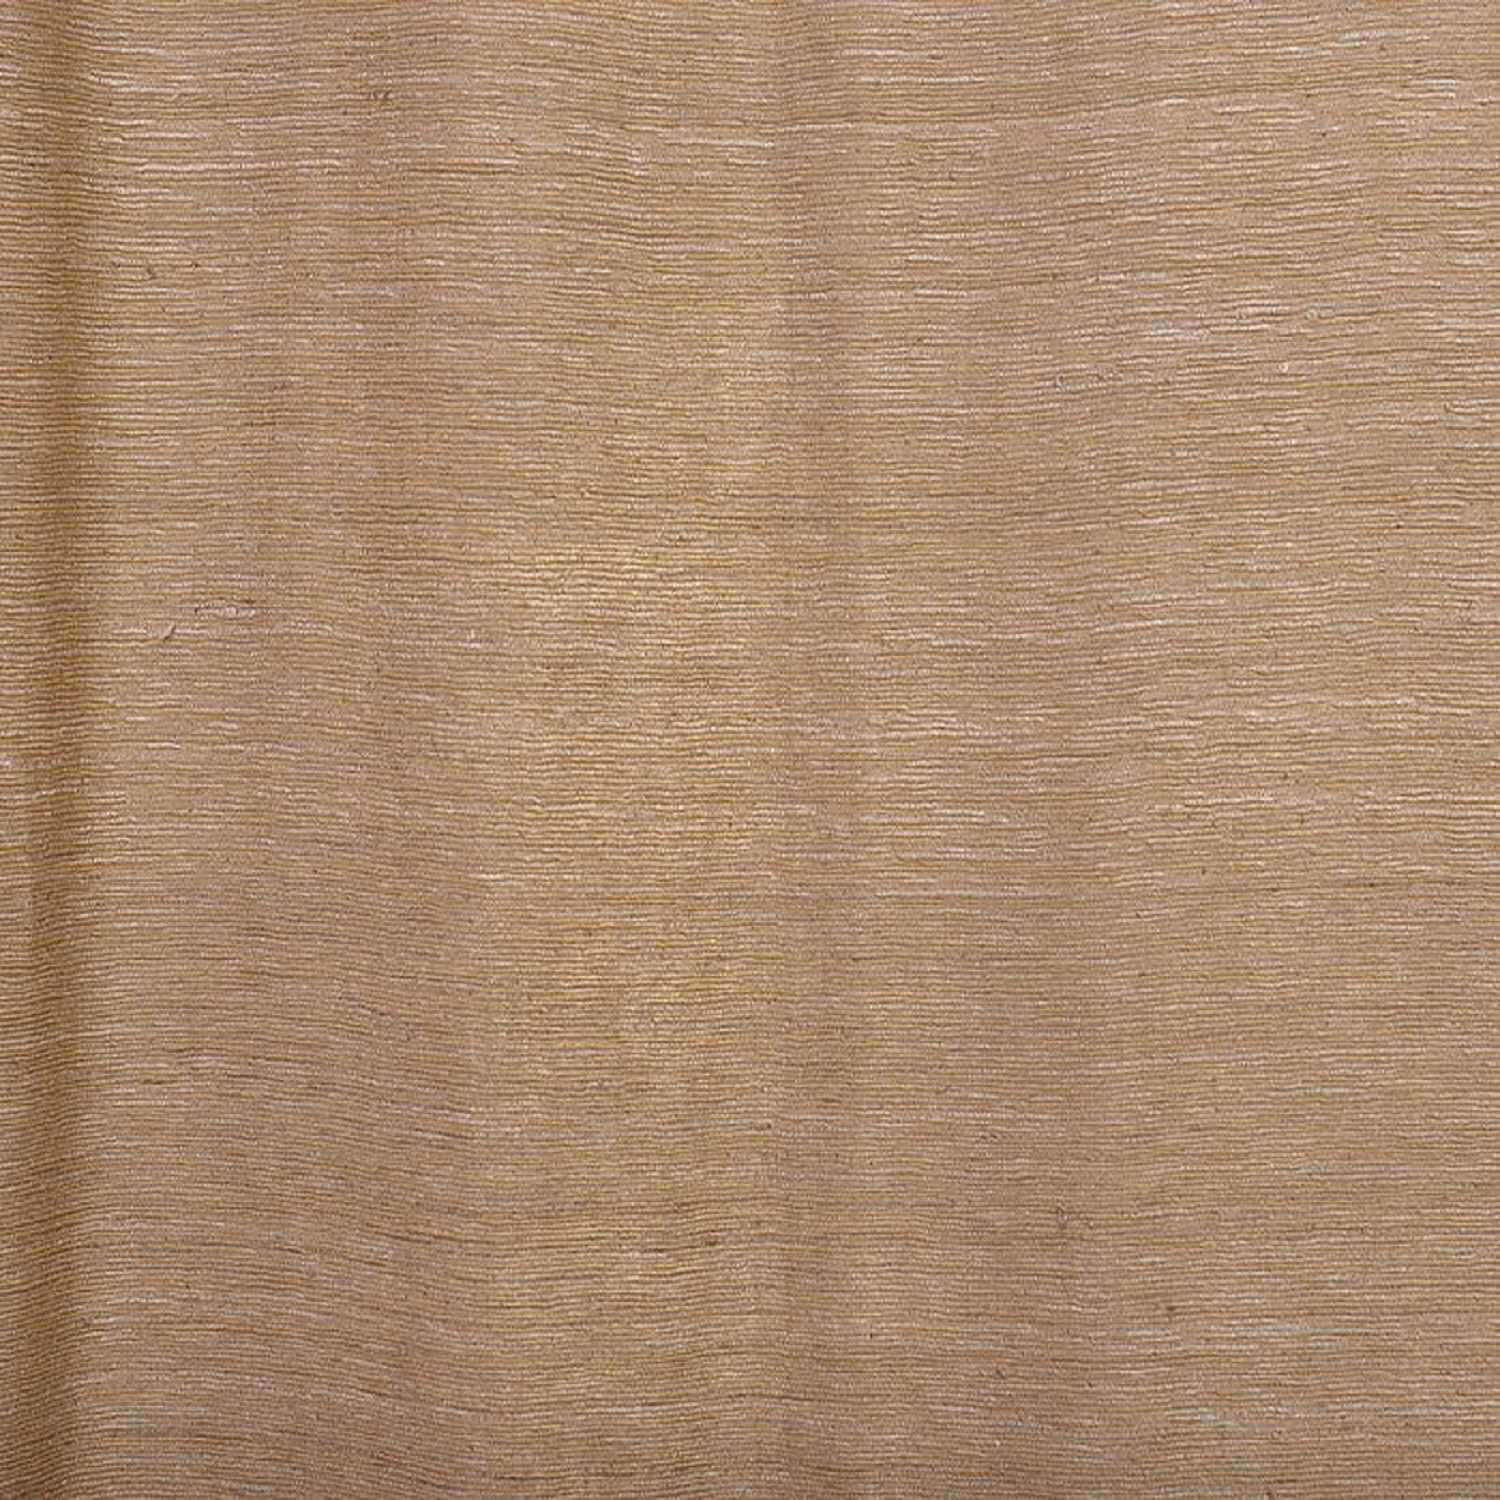 Sandalwood Raw Silk Swatch